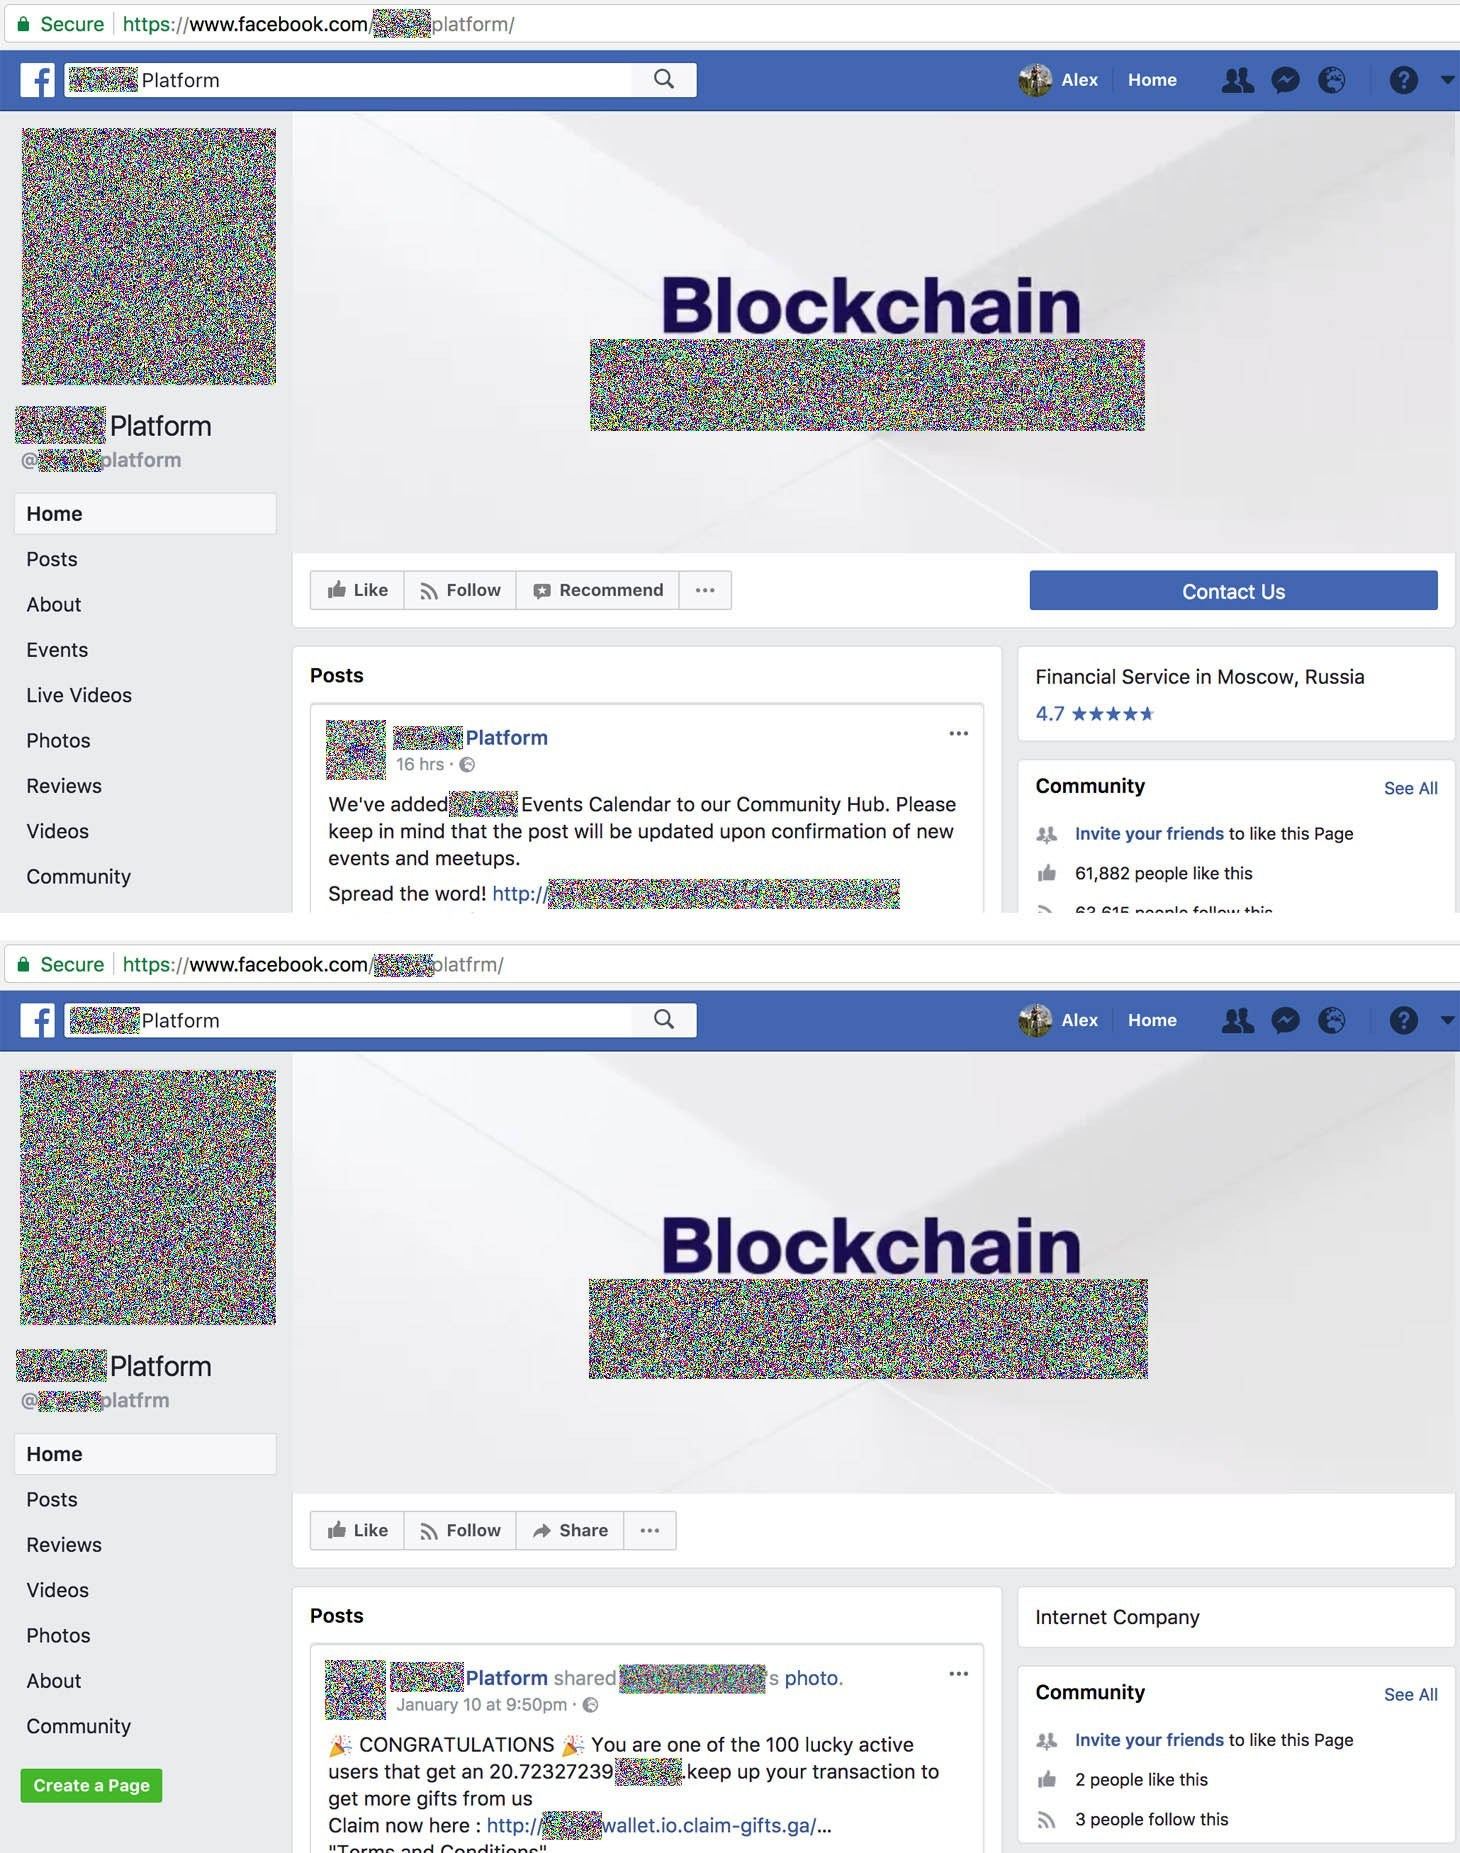 The genuine Facebook page of a cryptoplatform — and a fake one